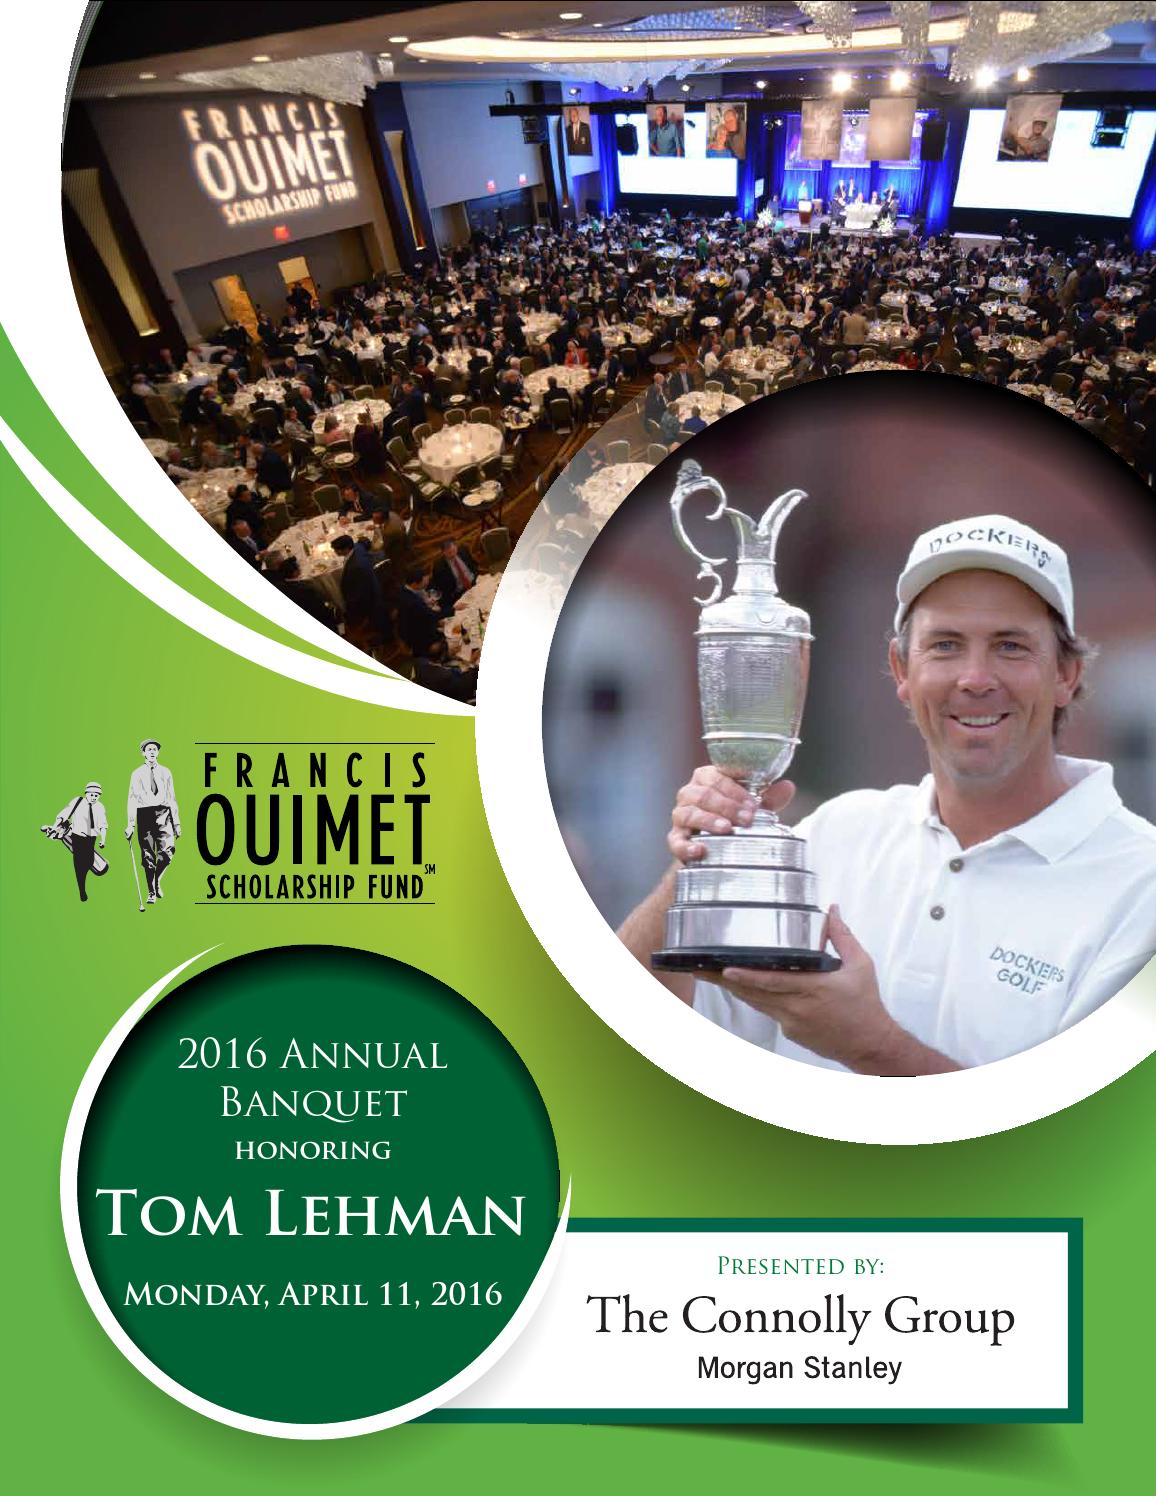 2016 Ouimet Banquet Program Book by Francis Ouimet Scholarship Fund - issuu